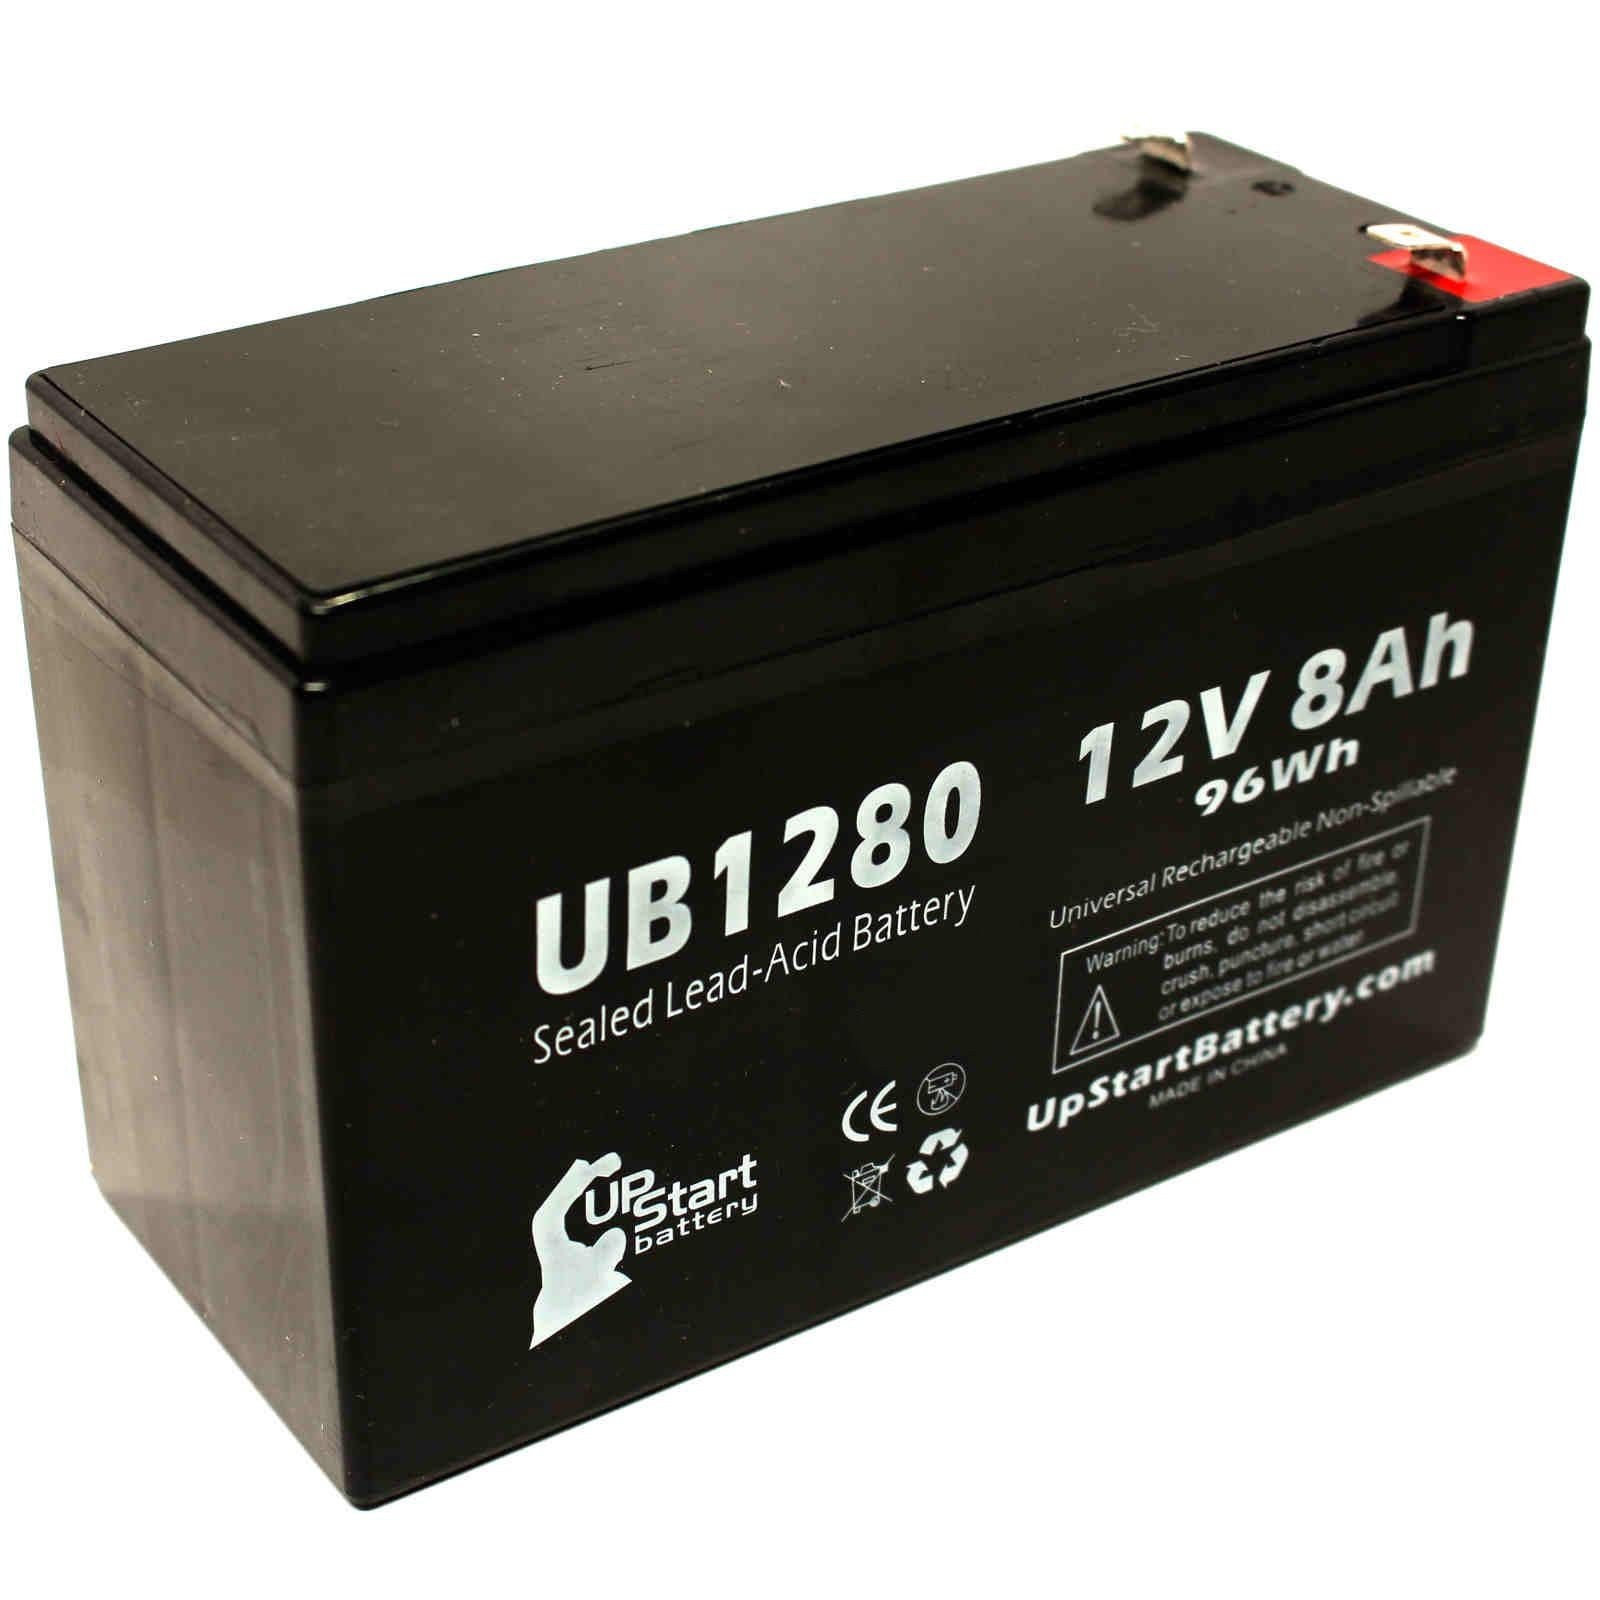 Light Alarms M10 Battery - Replacement UB1280 Universal Sealed Lead Acid Battery (12V, 8Ah, 8000mAh, F1 Terminal, AGM, SLA) - Includes TWO F1 to F2 Terminal Adapters